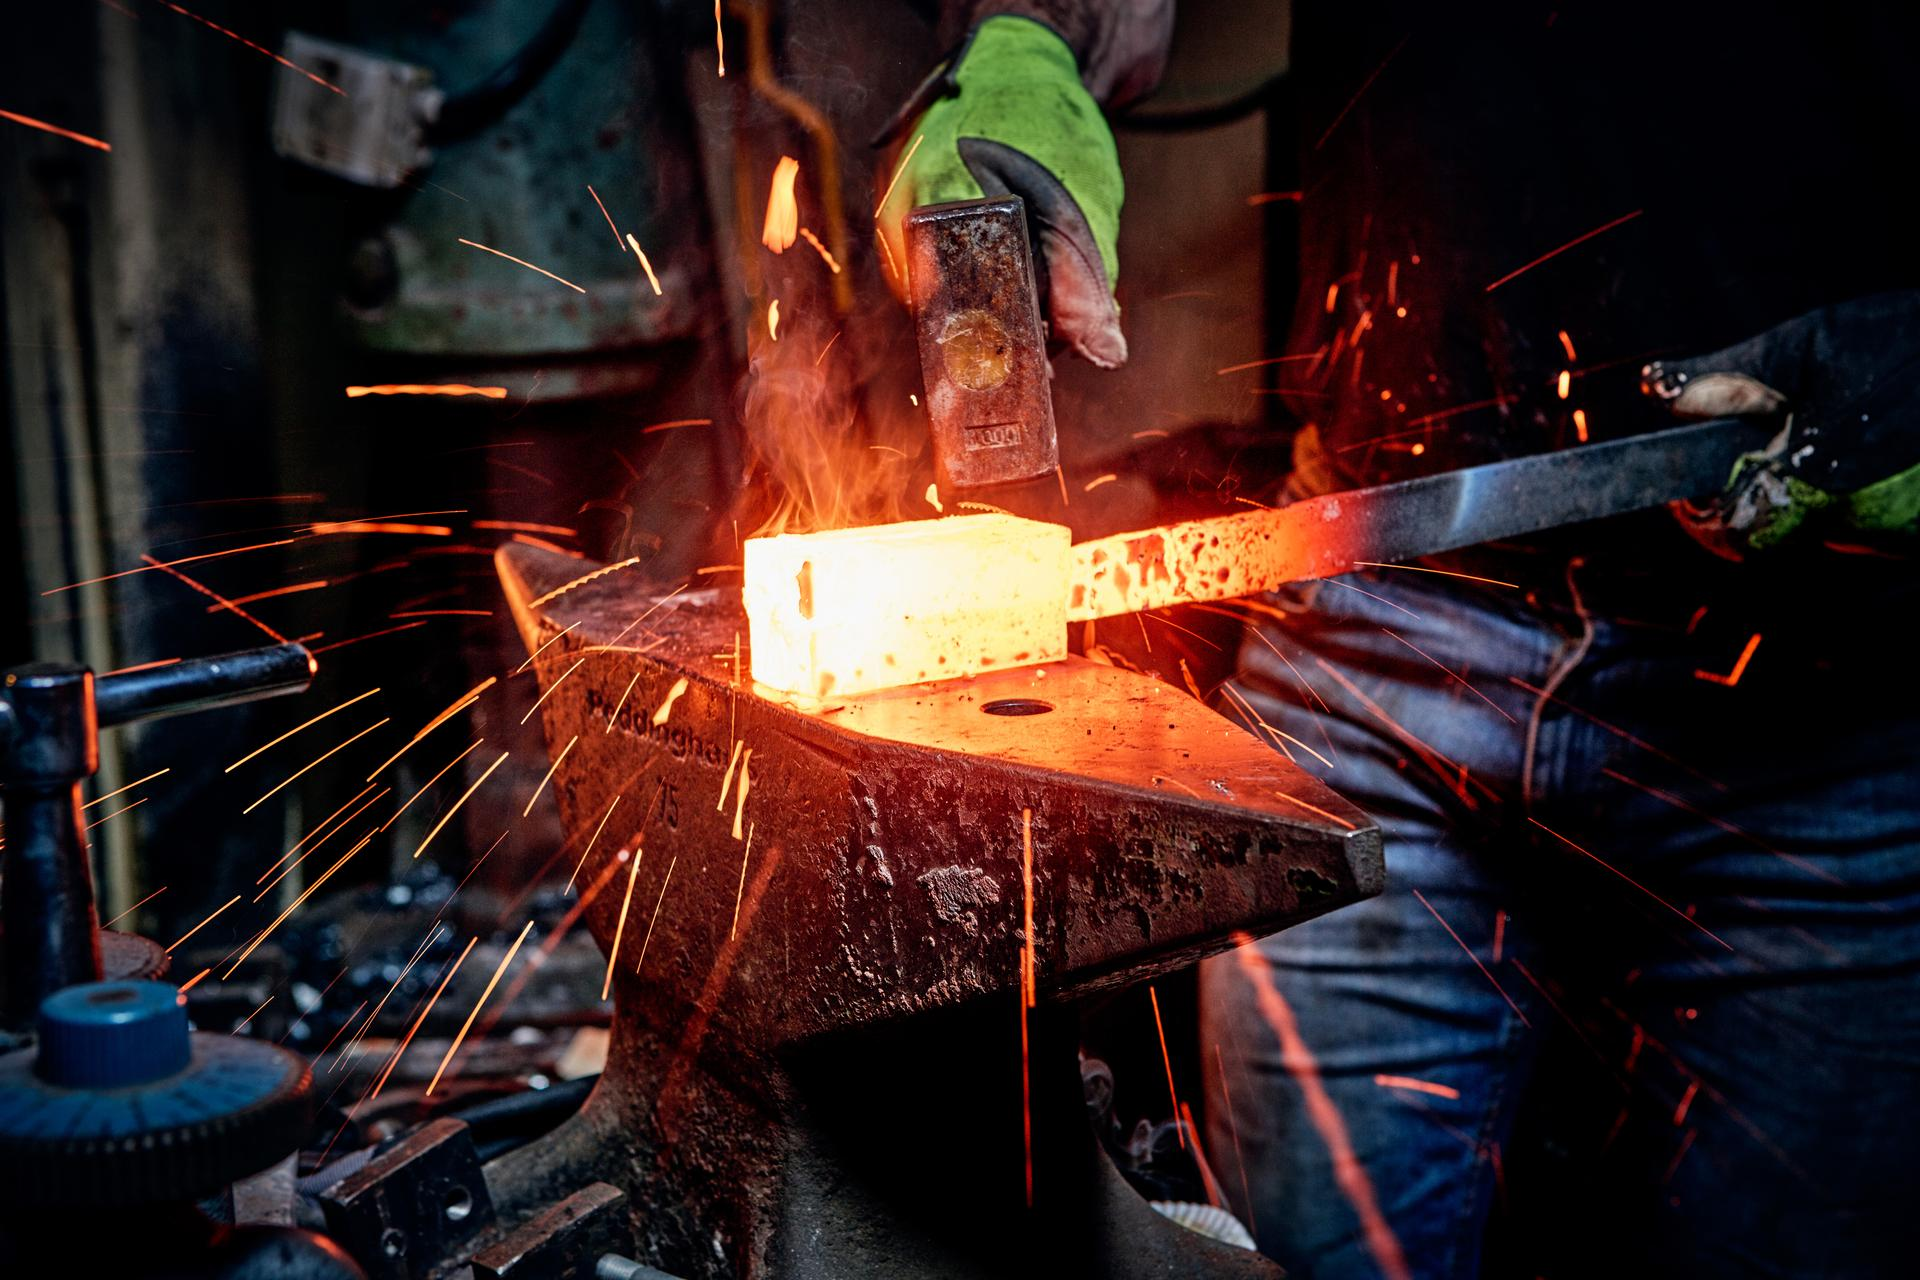 Making of Damascus steel: forged by hand